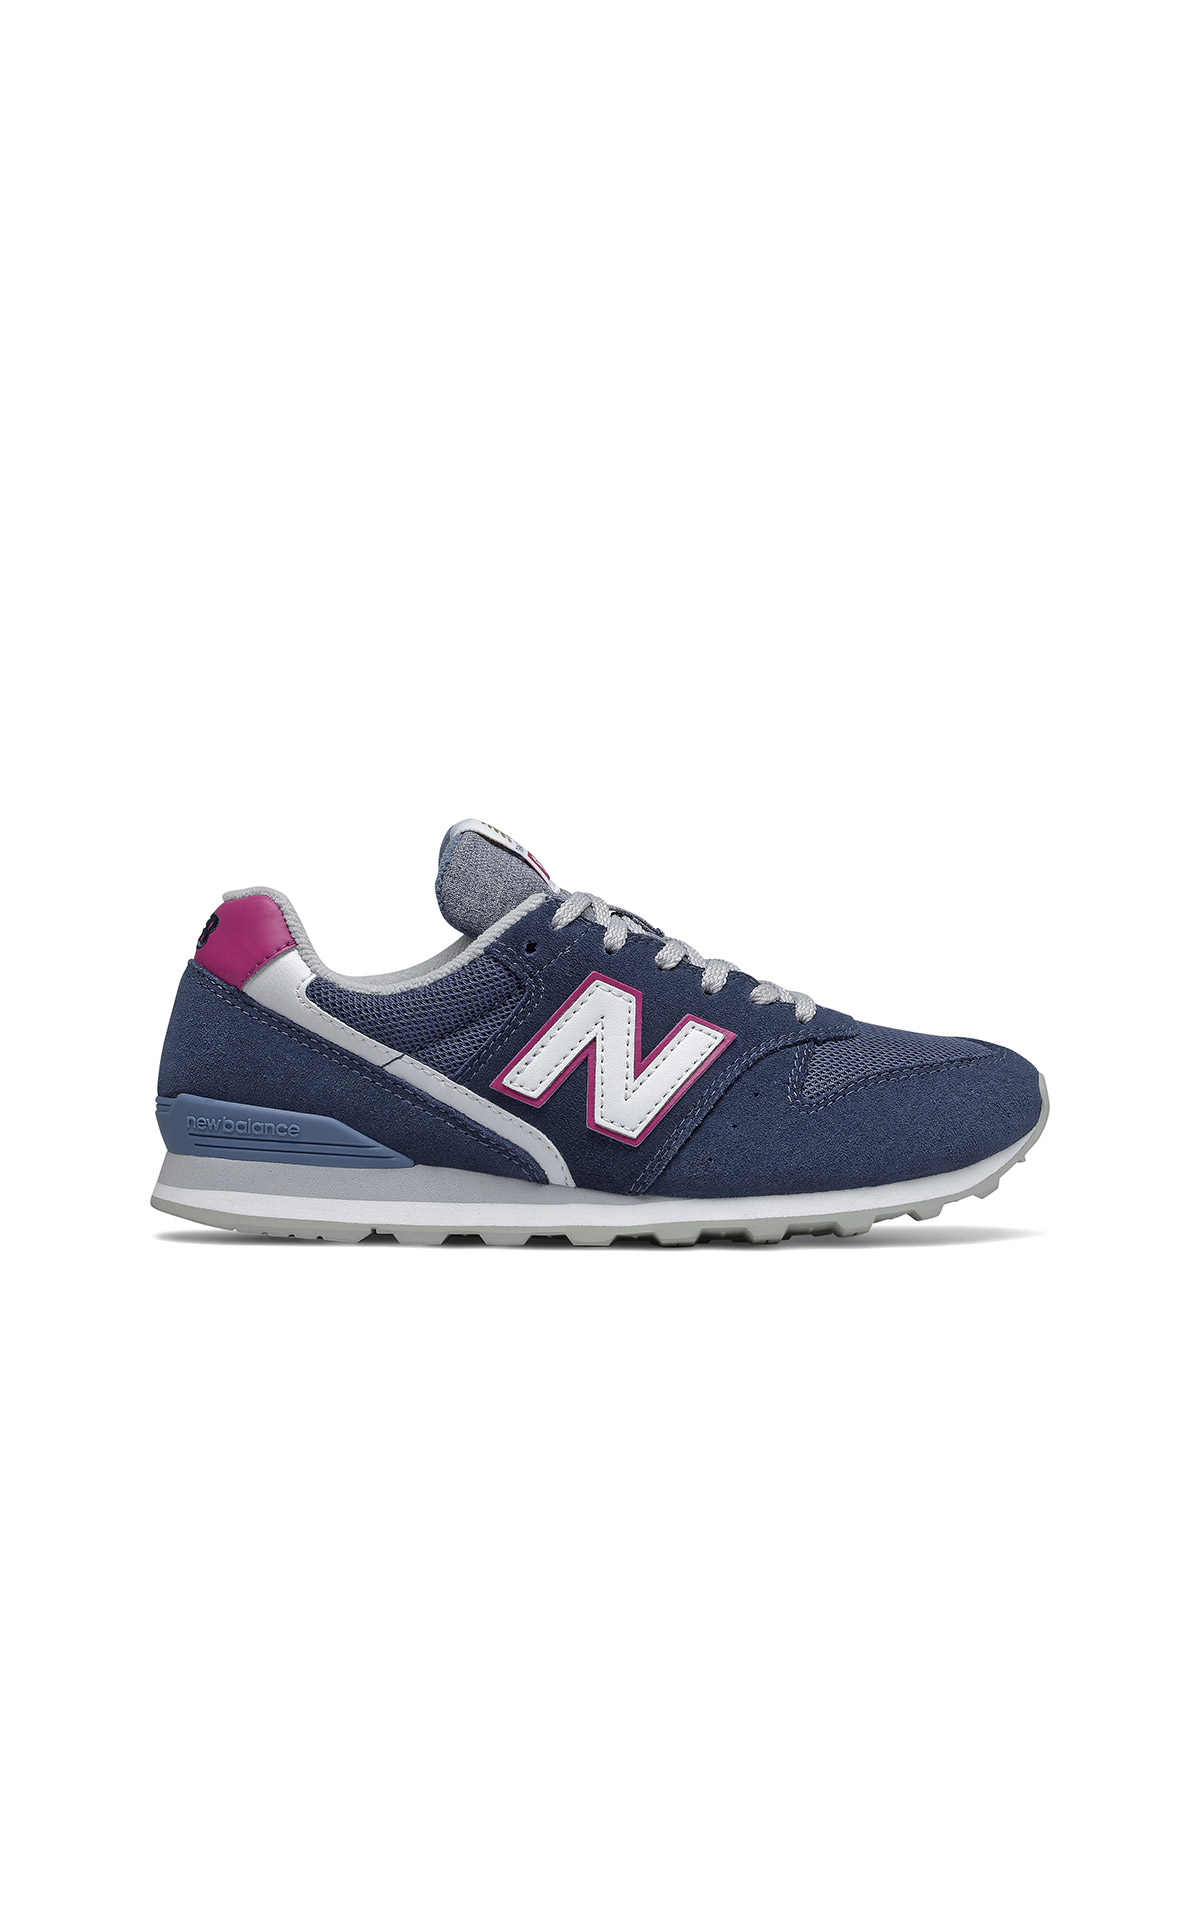 Blue and pink sneakers New Balance